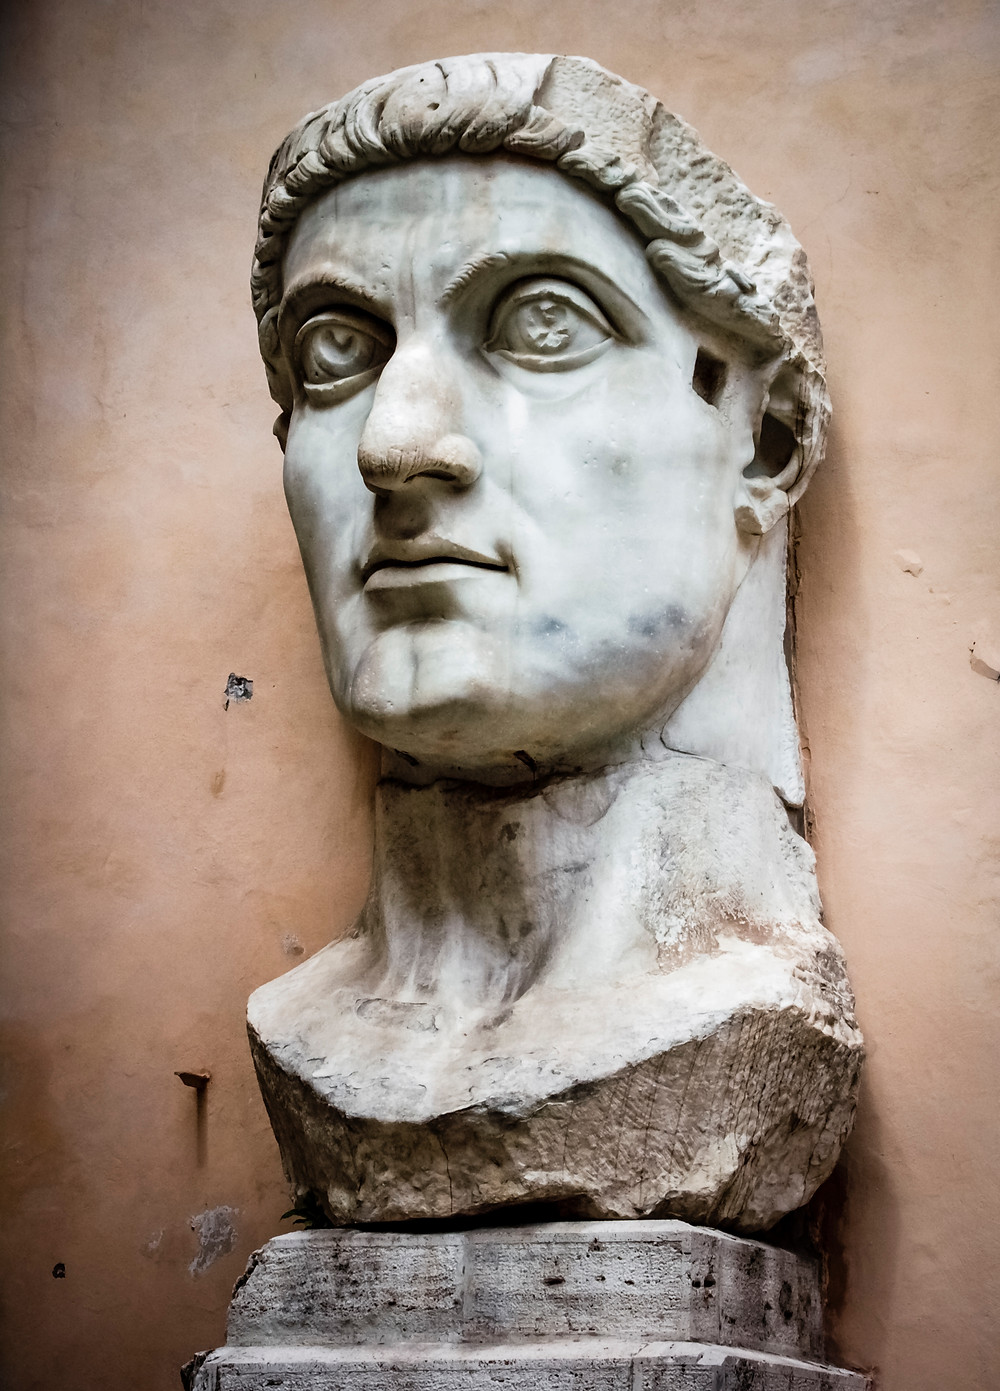 Colossal bust of Constantinus which belonged to the statue of him located in the basilica built by his enemy, Maxentius.